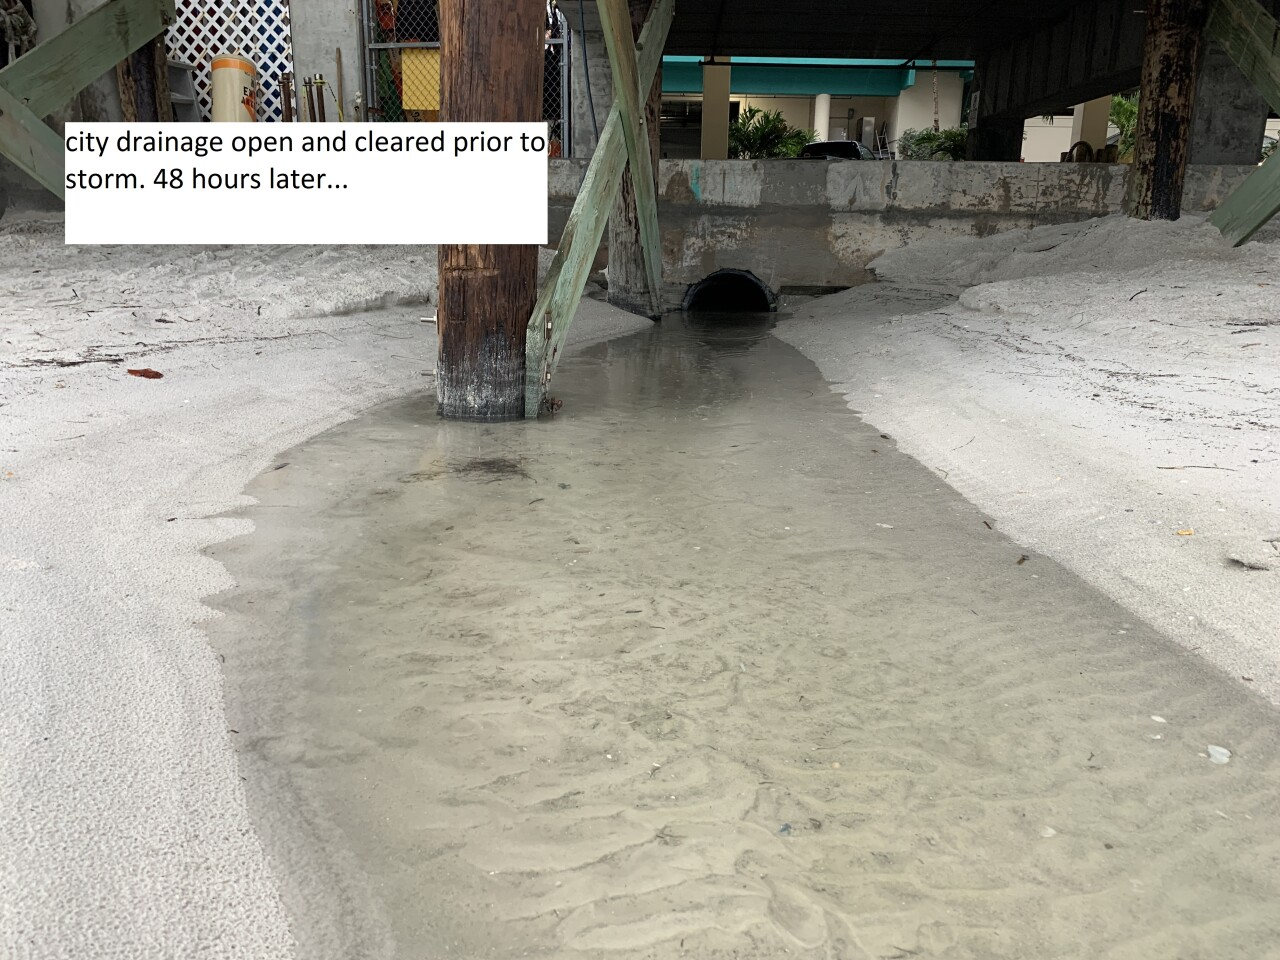 Storm drain at John's Pass on June 5th. Photo taken by Dylan Hubbard of Hubbard's Marina.